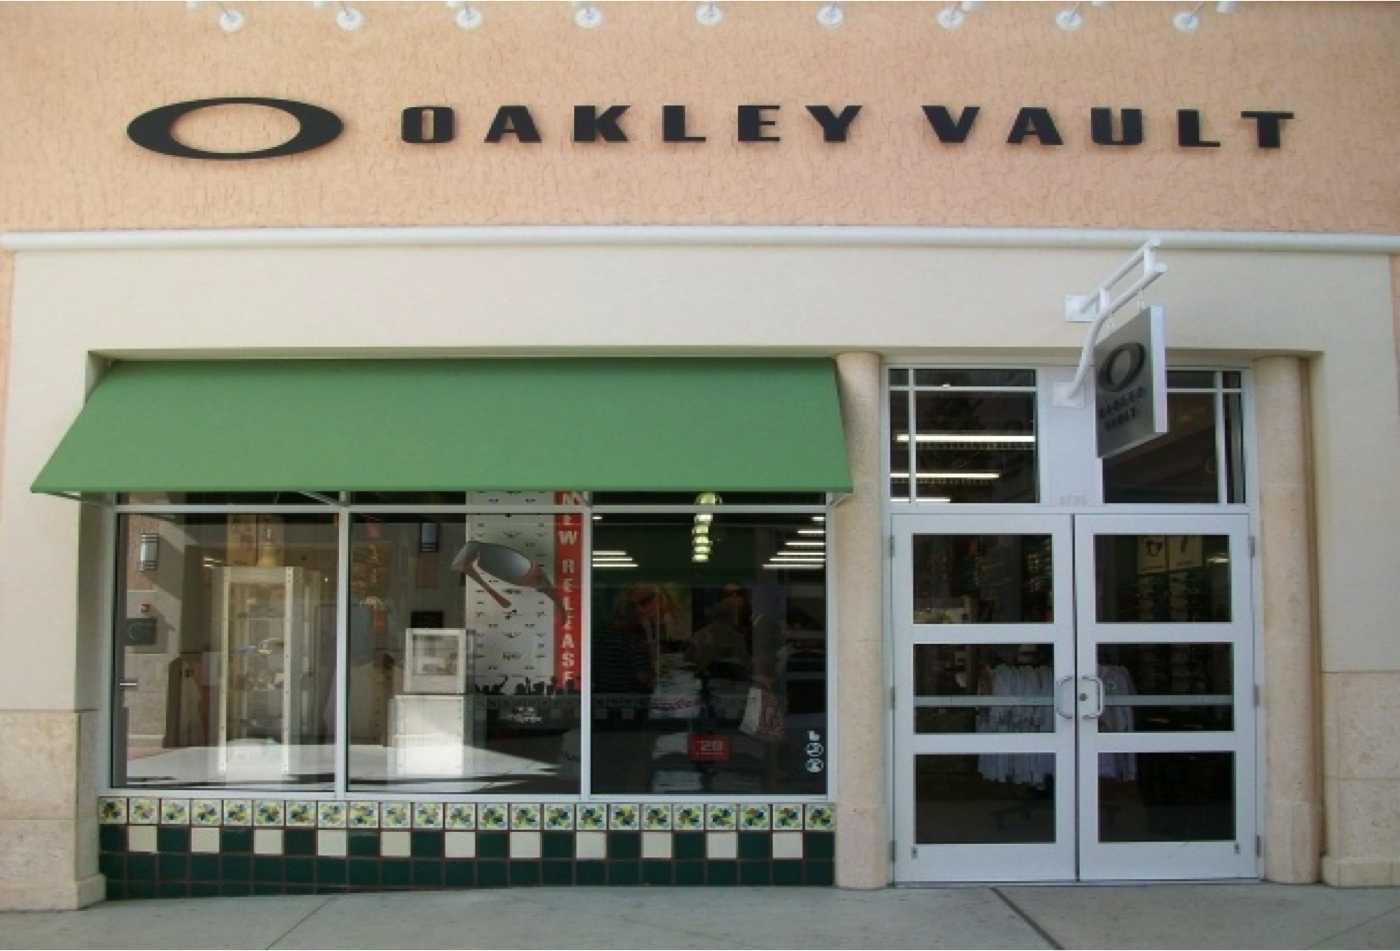 official oakley outlet  the official oakley outlet store: the oakley vault at orlando premium outlets vineland ave.. shop oakley sunglasses, goggles, apparel, and more up to 50%